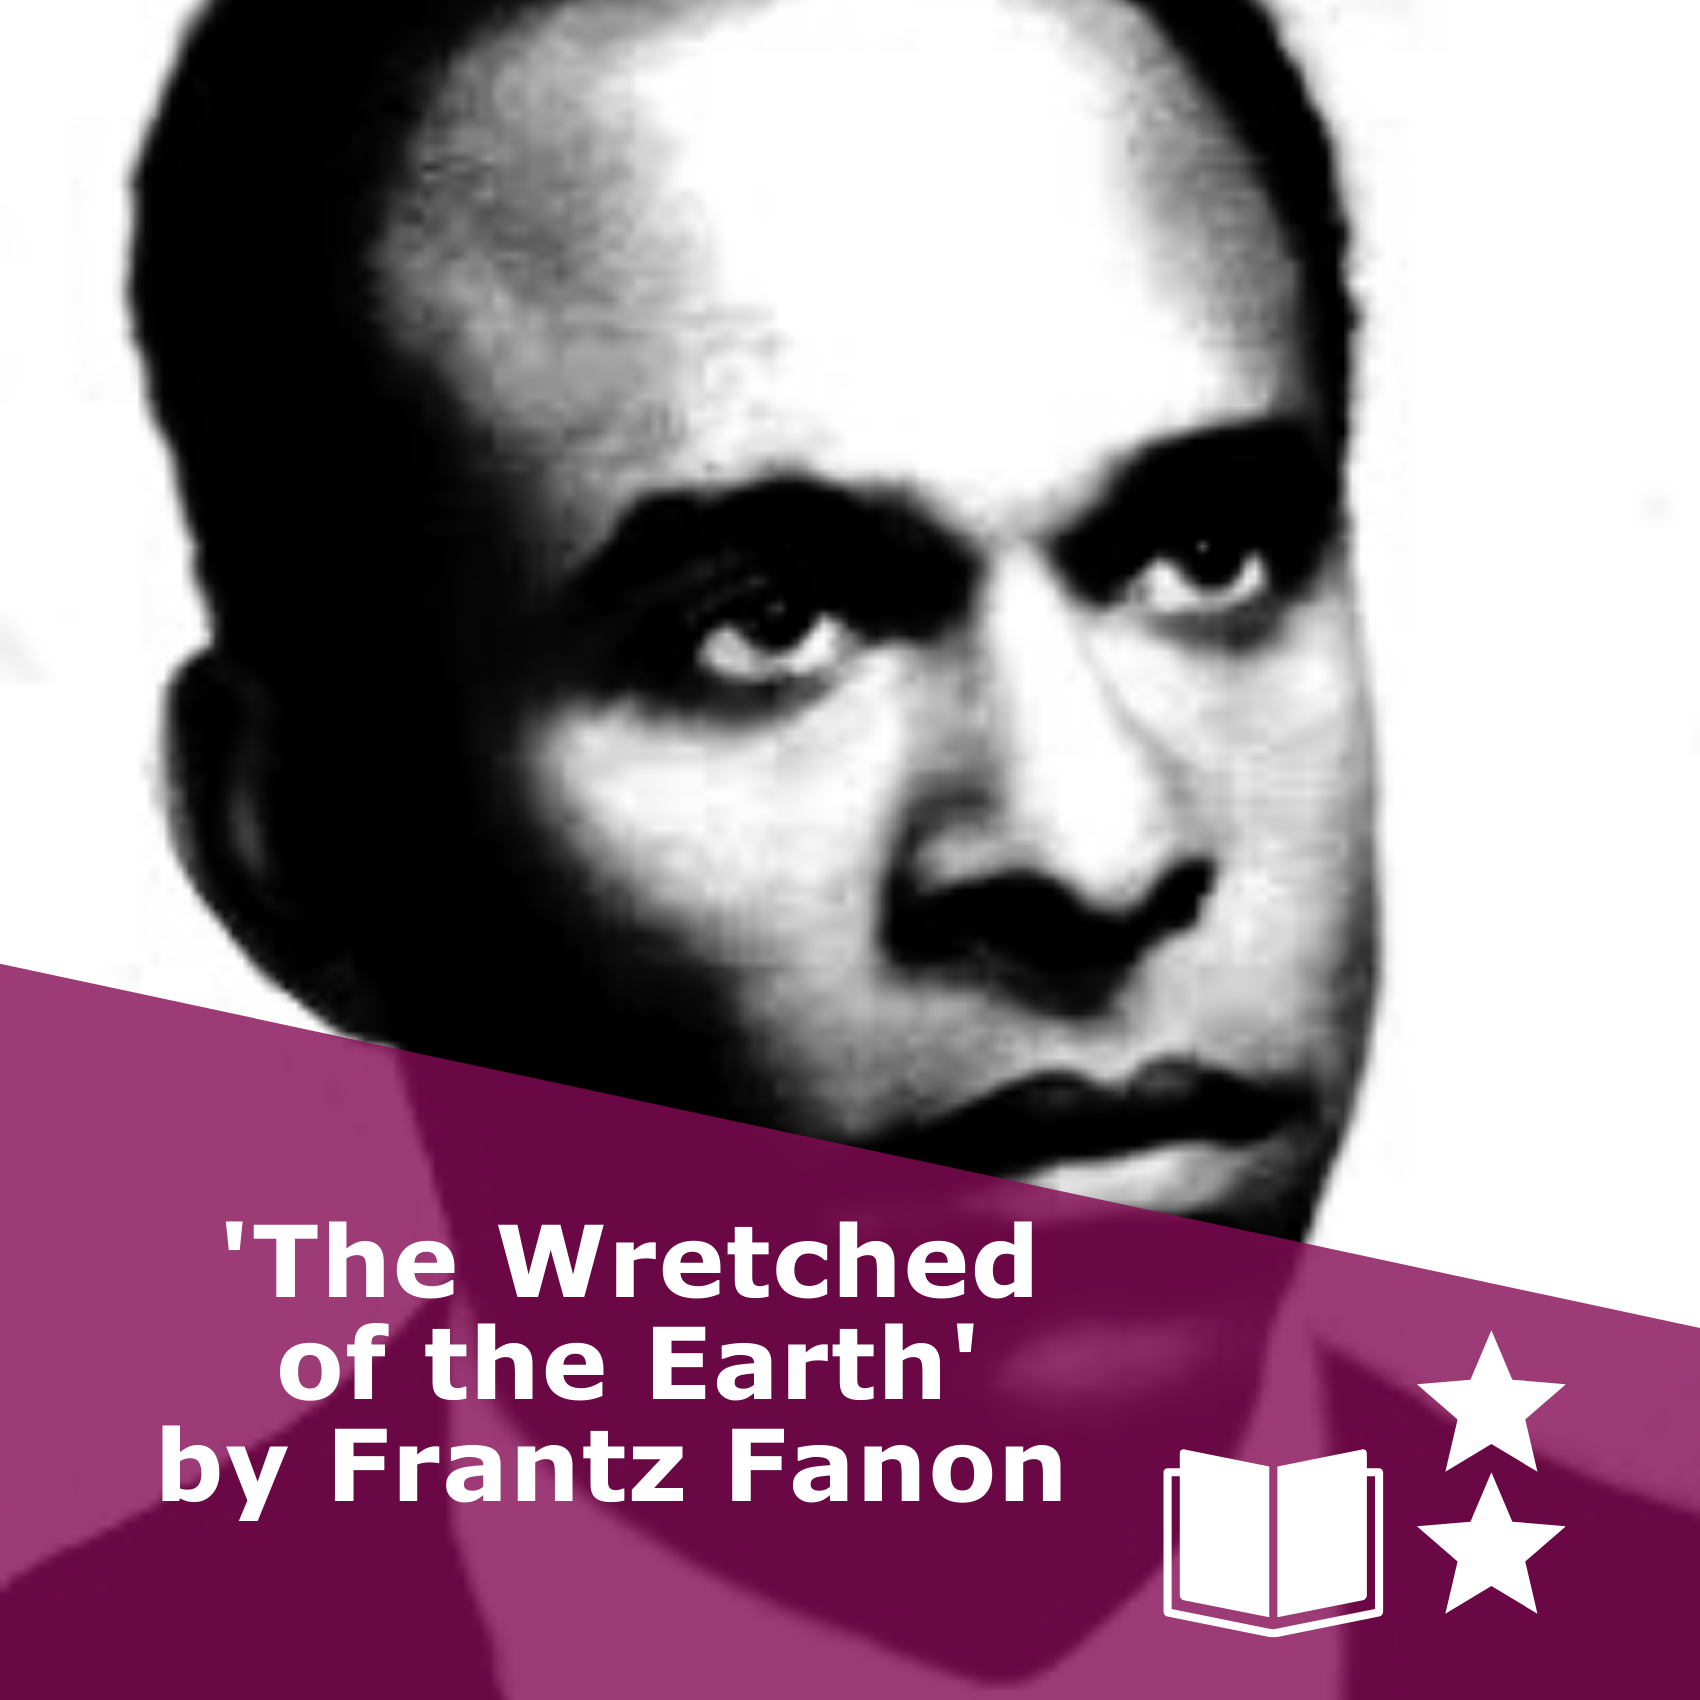 Picture of Frantz Fanon in black and white. Title 'The Wretched of the Earth'. It is a book, rated two stars.